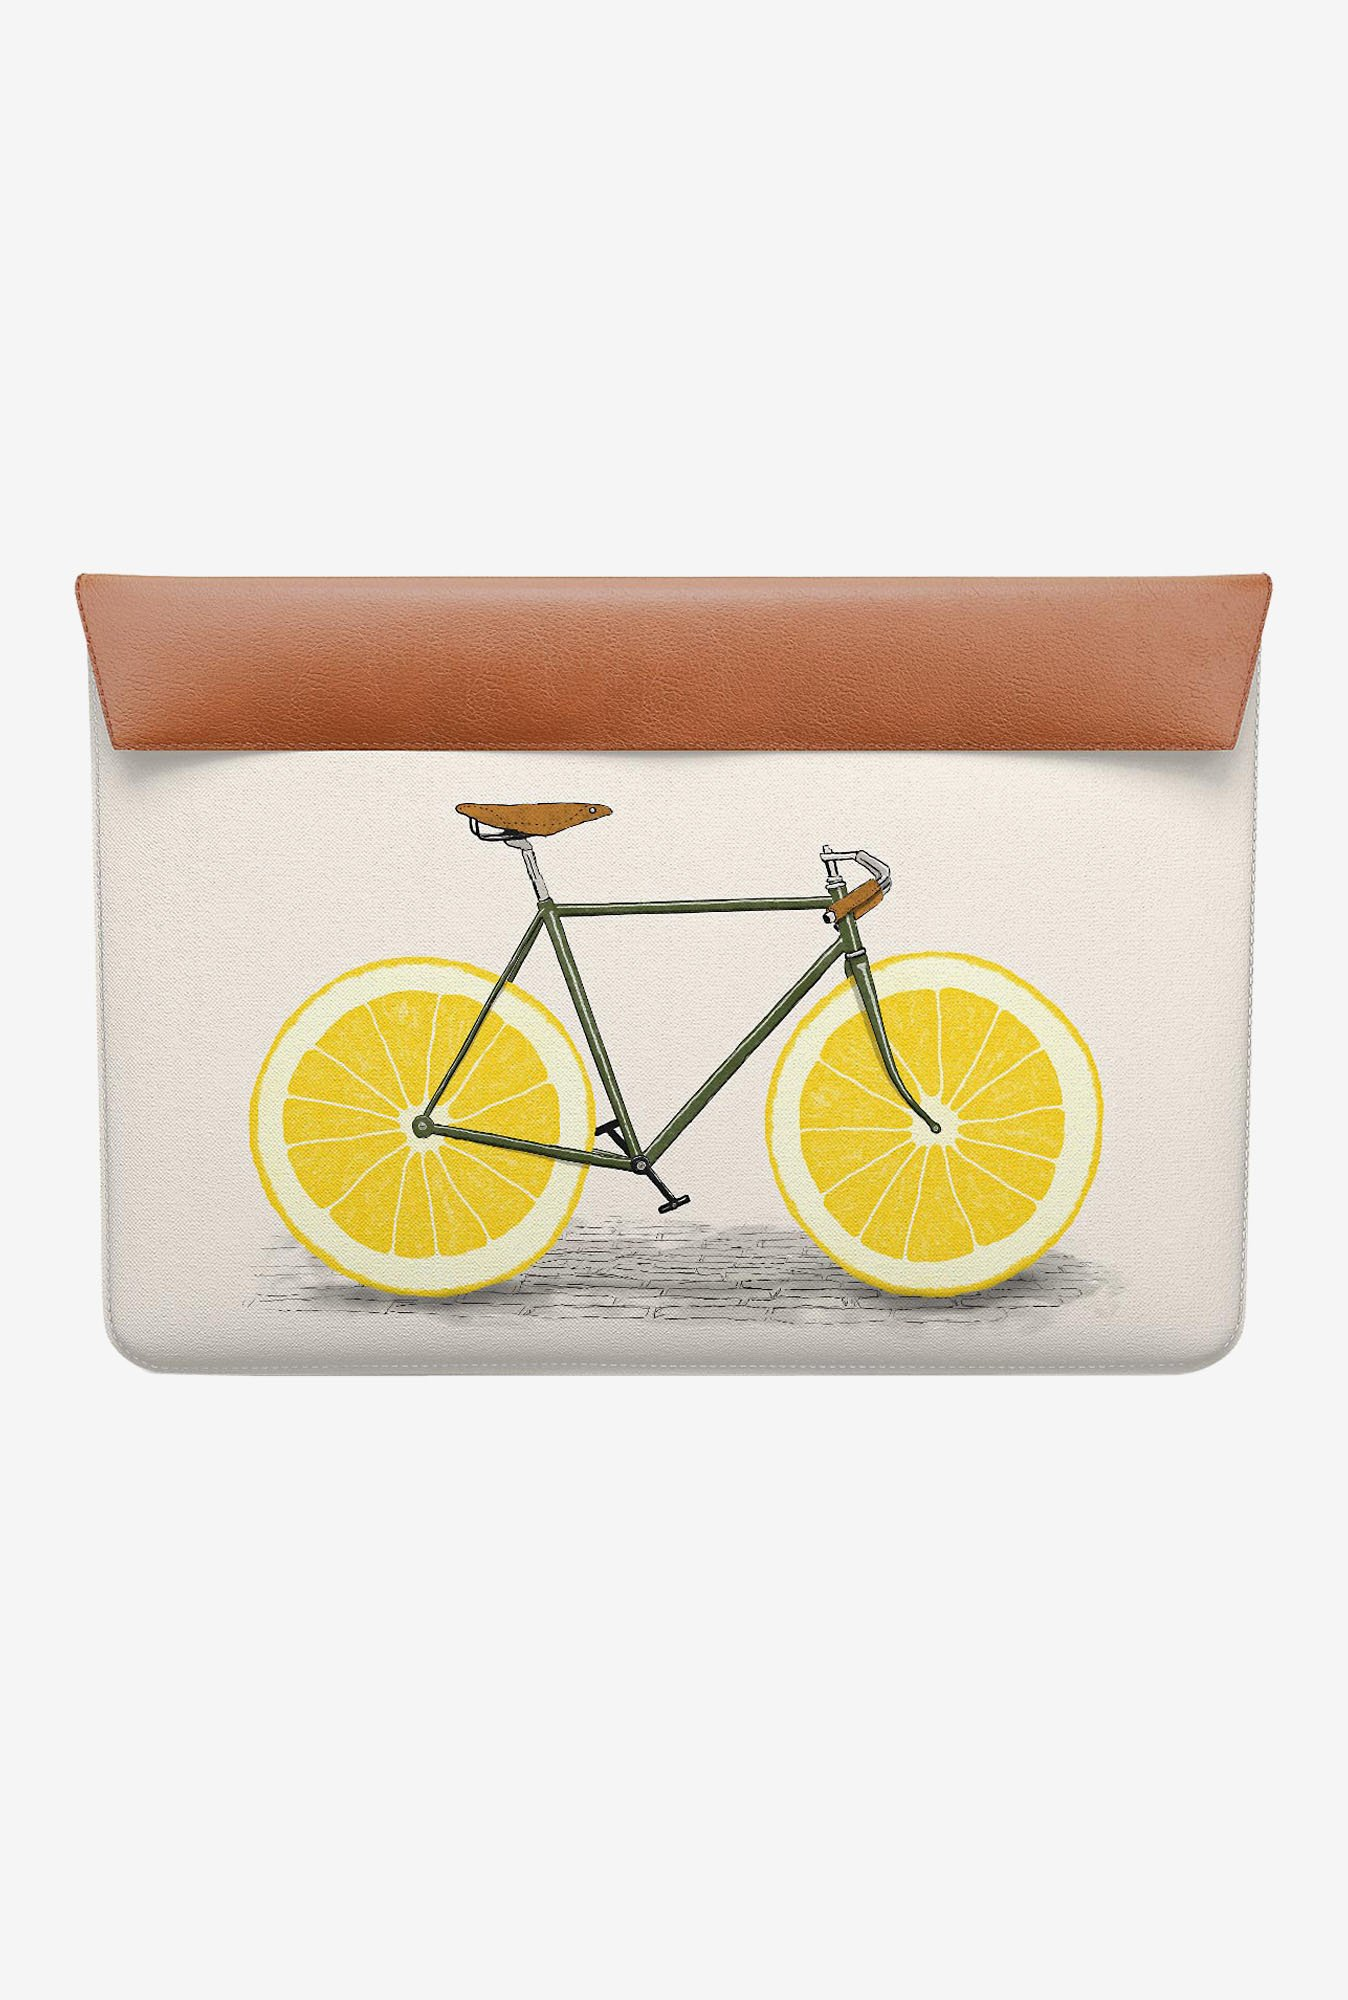 DailyObjects Yellow Wheels MacBook Air 11 Envelope Sleeve